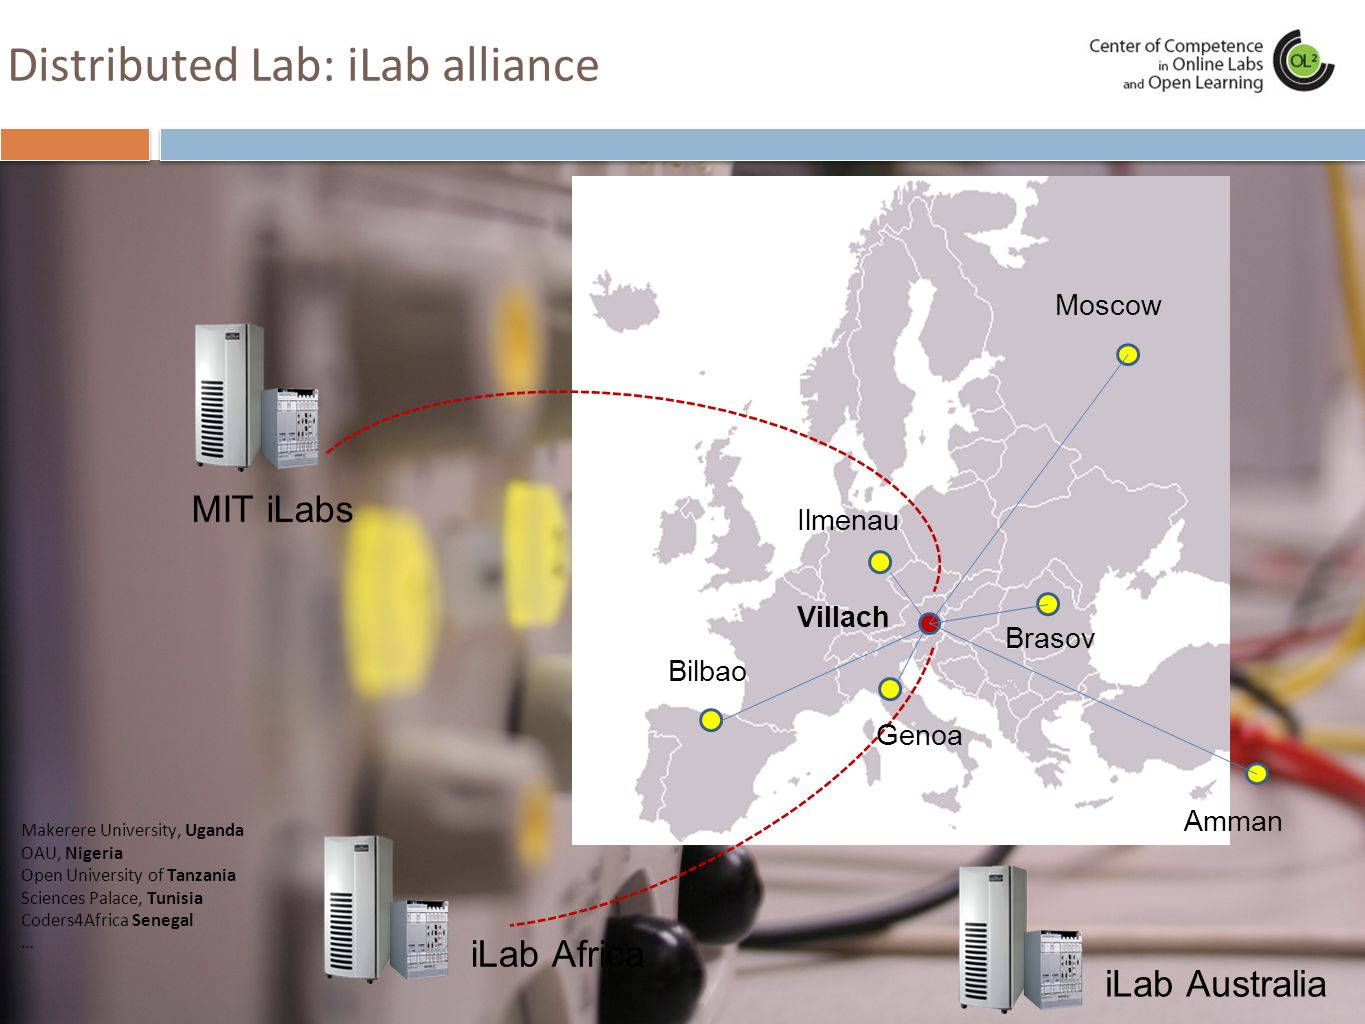 Distributed Lab: iLab alliance